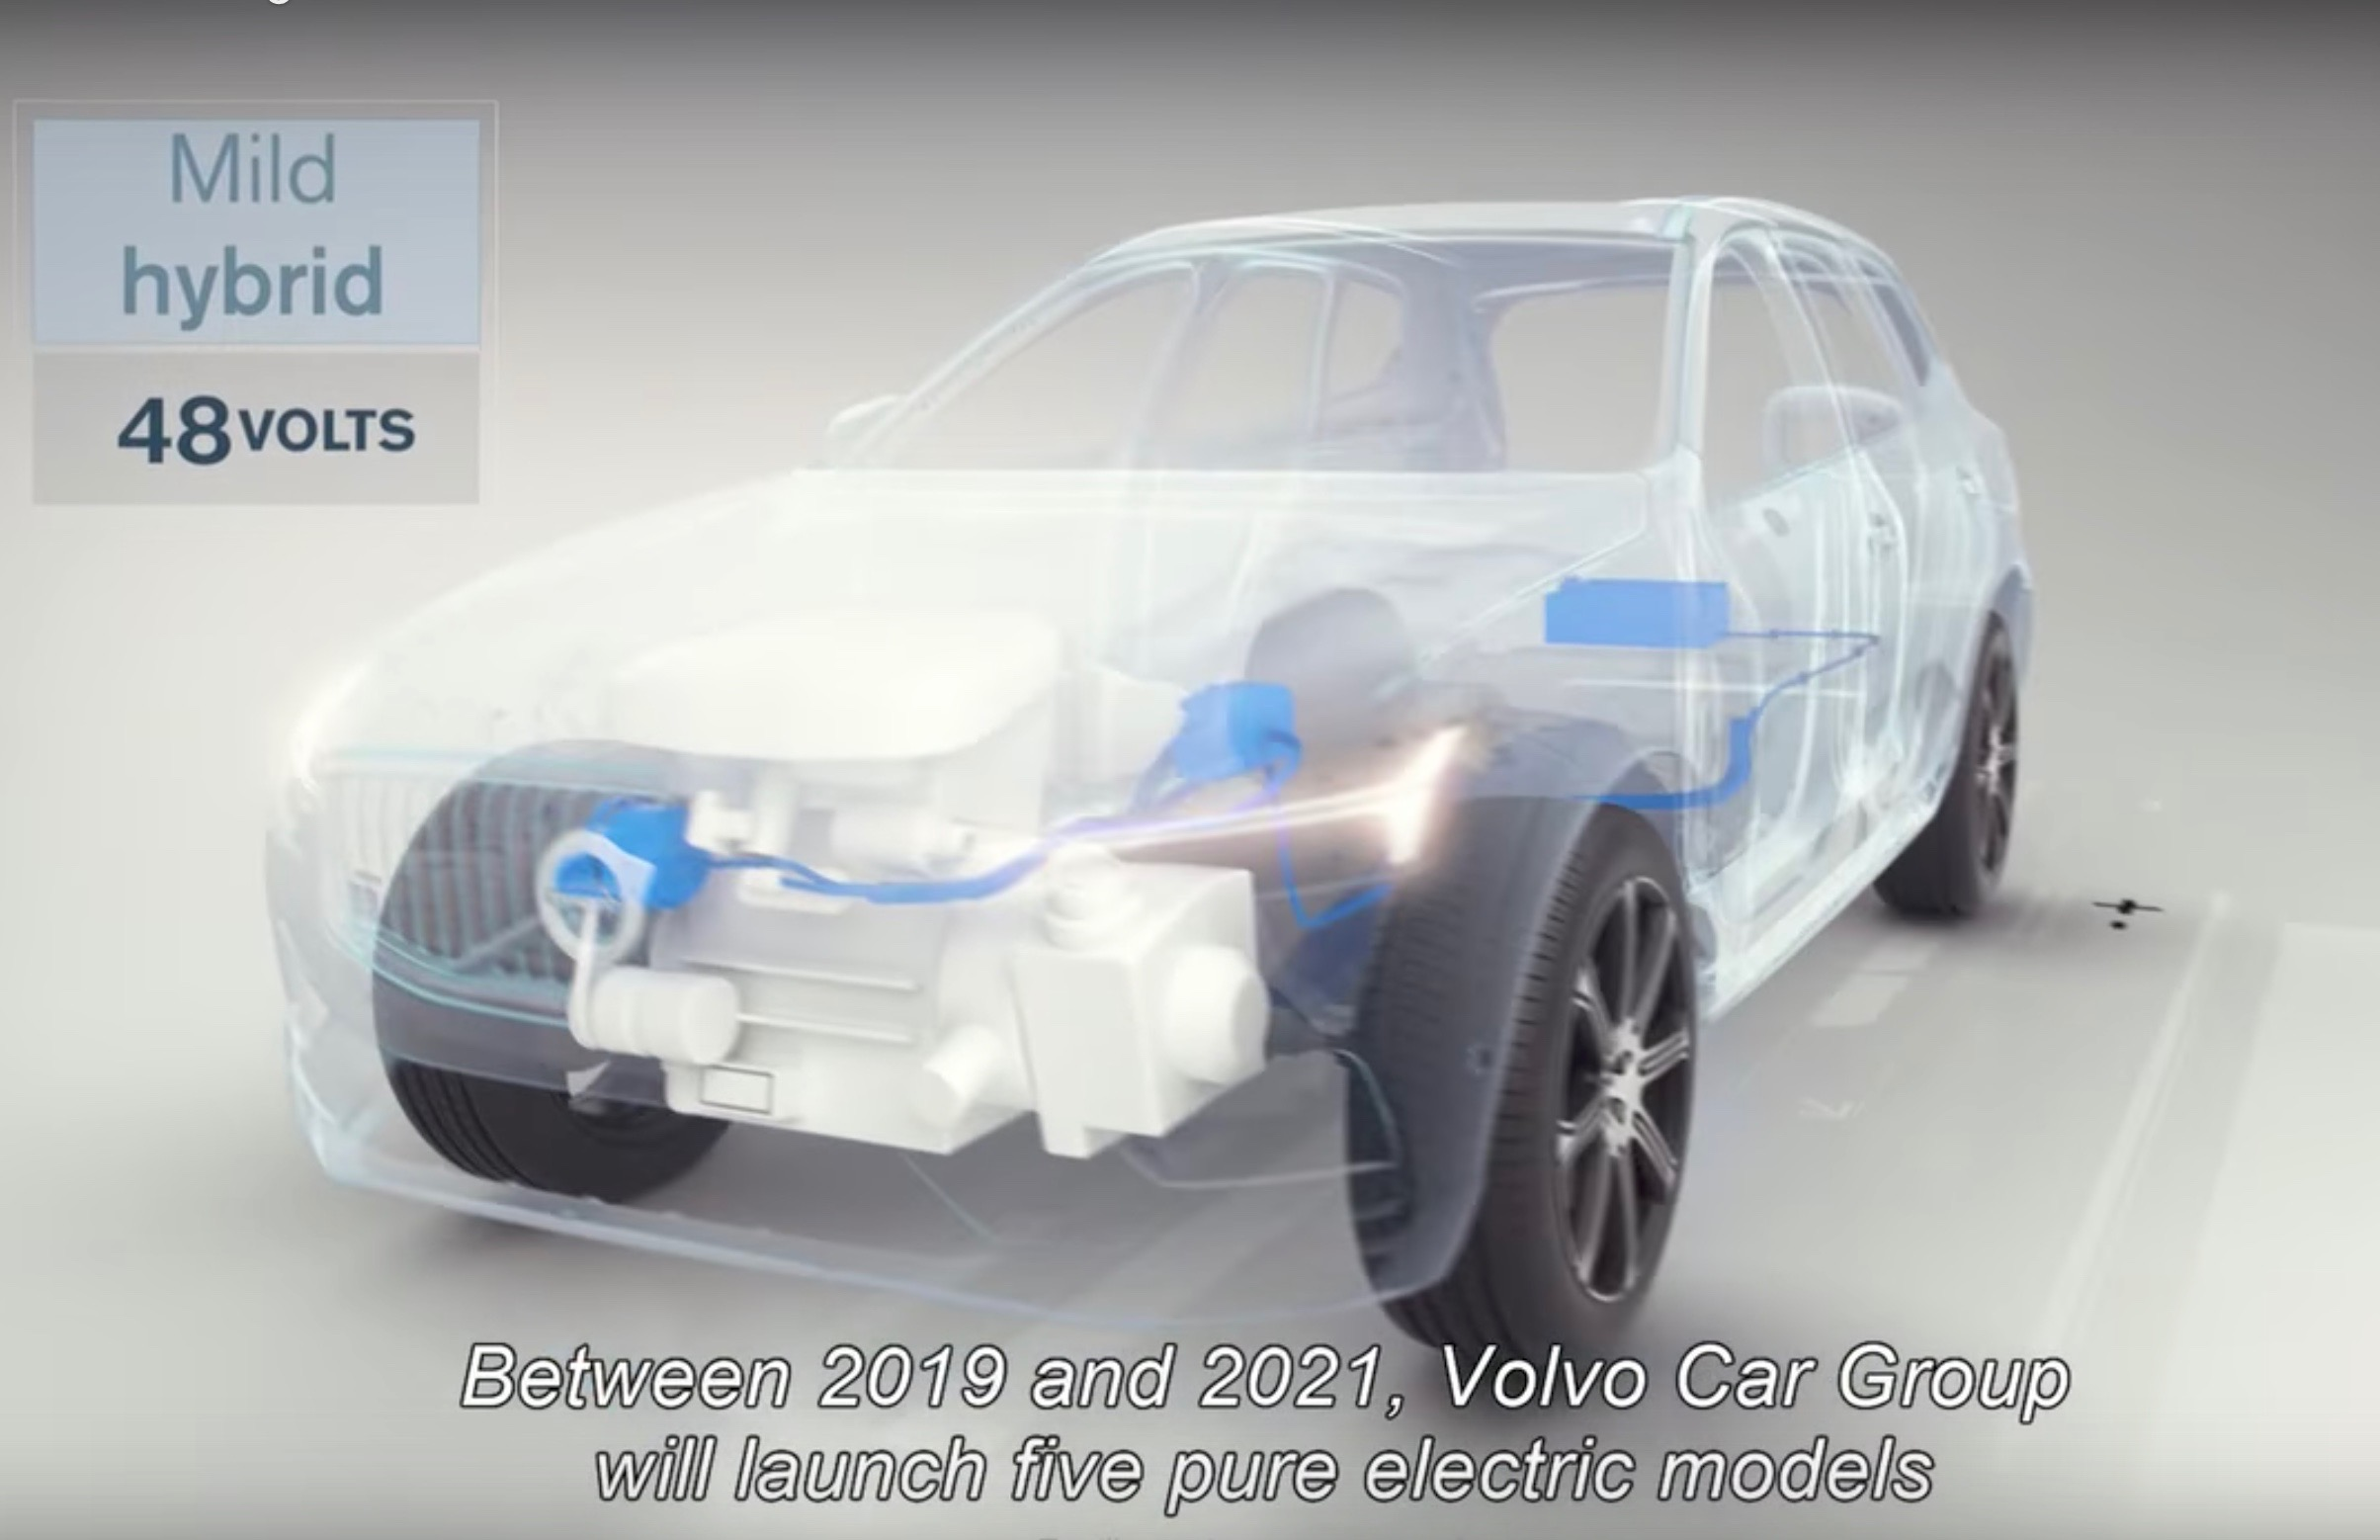 Volvo Xc60 Hybrid >> Volvo will launch 5 EVs by 2021, every model at least mild